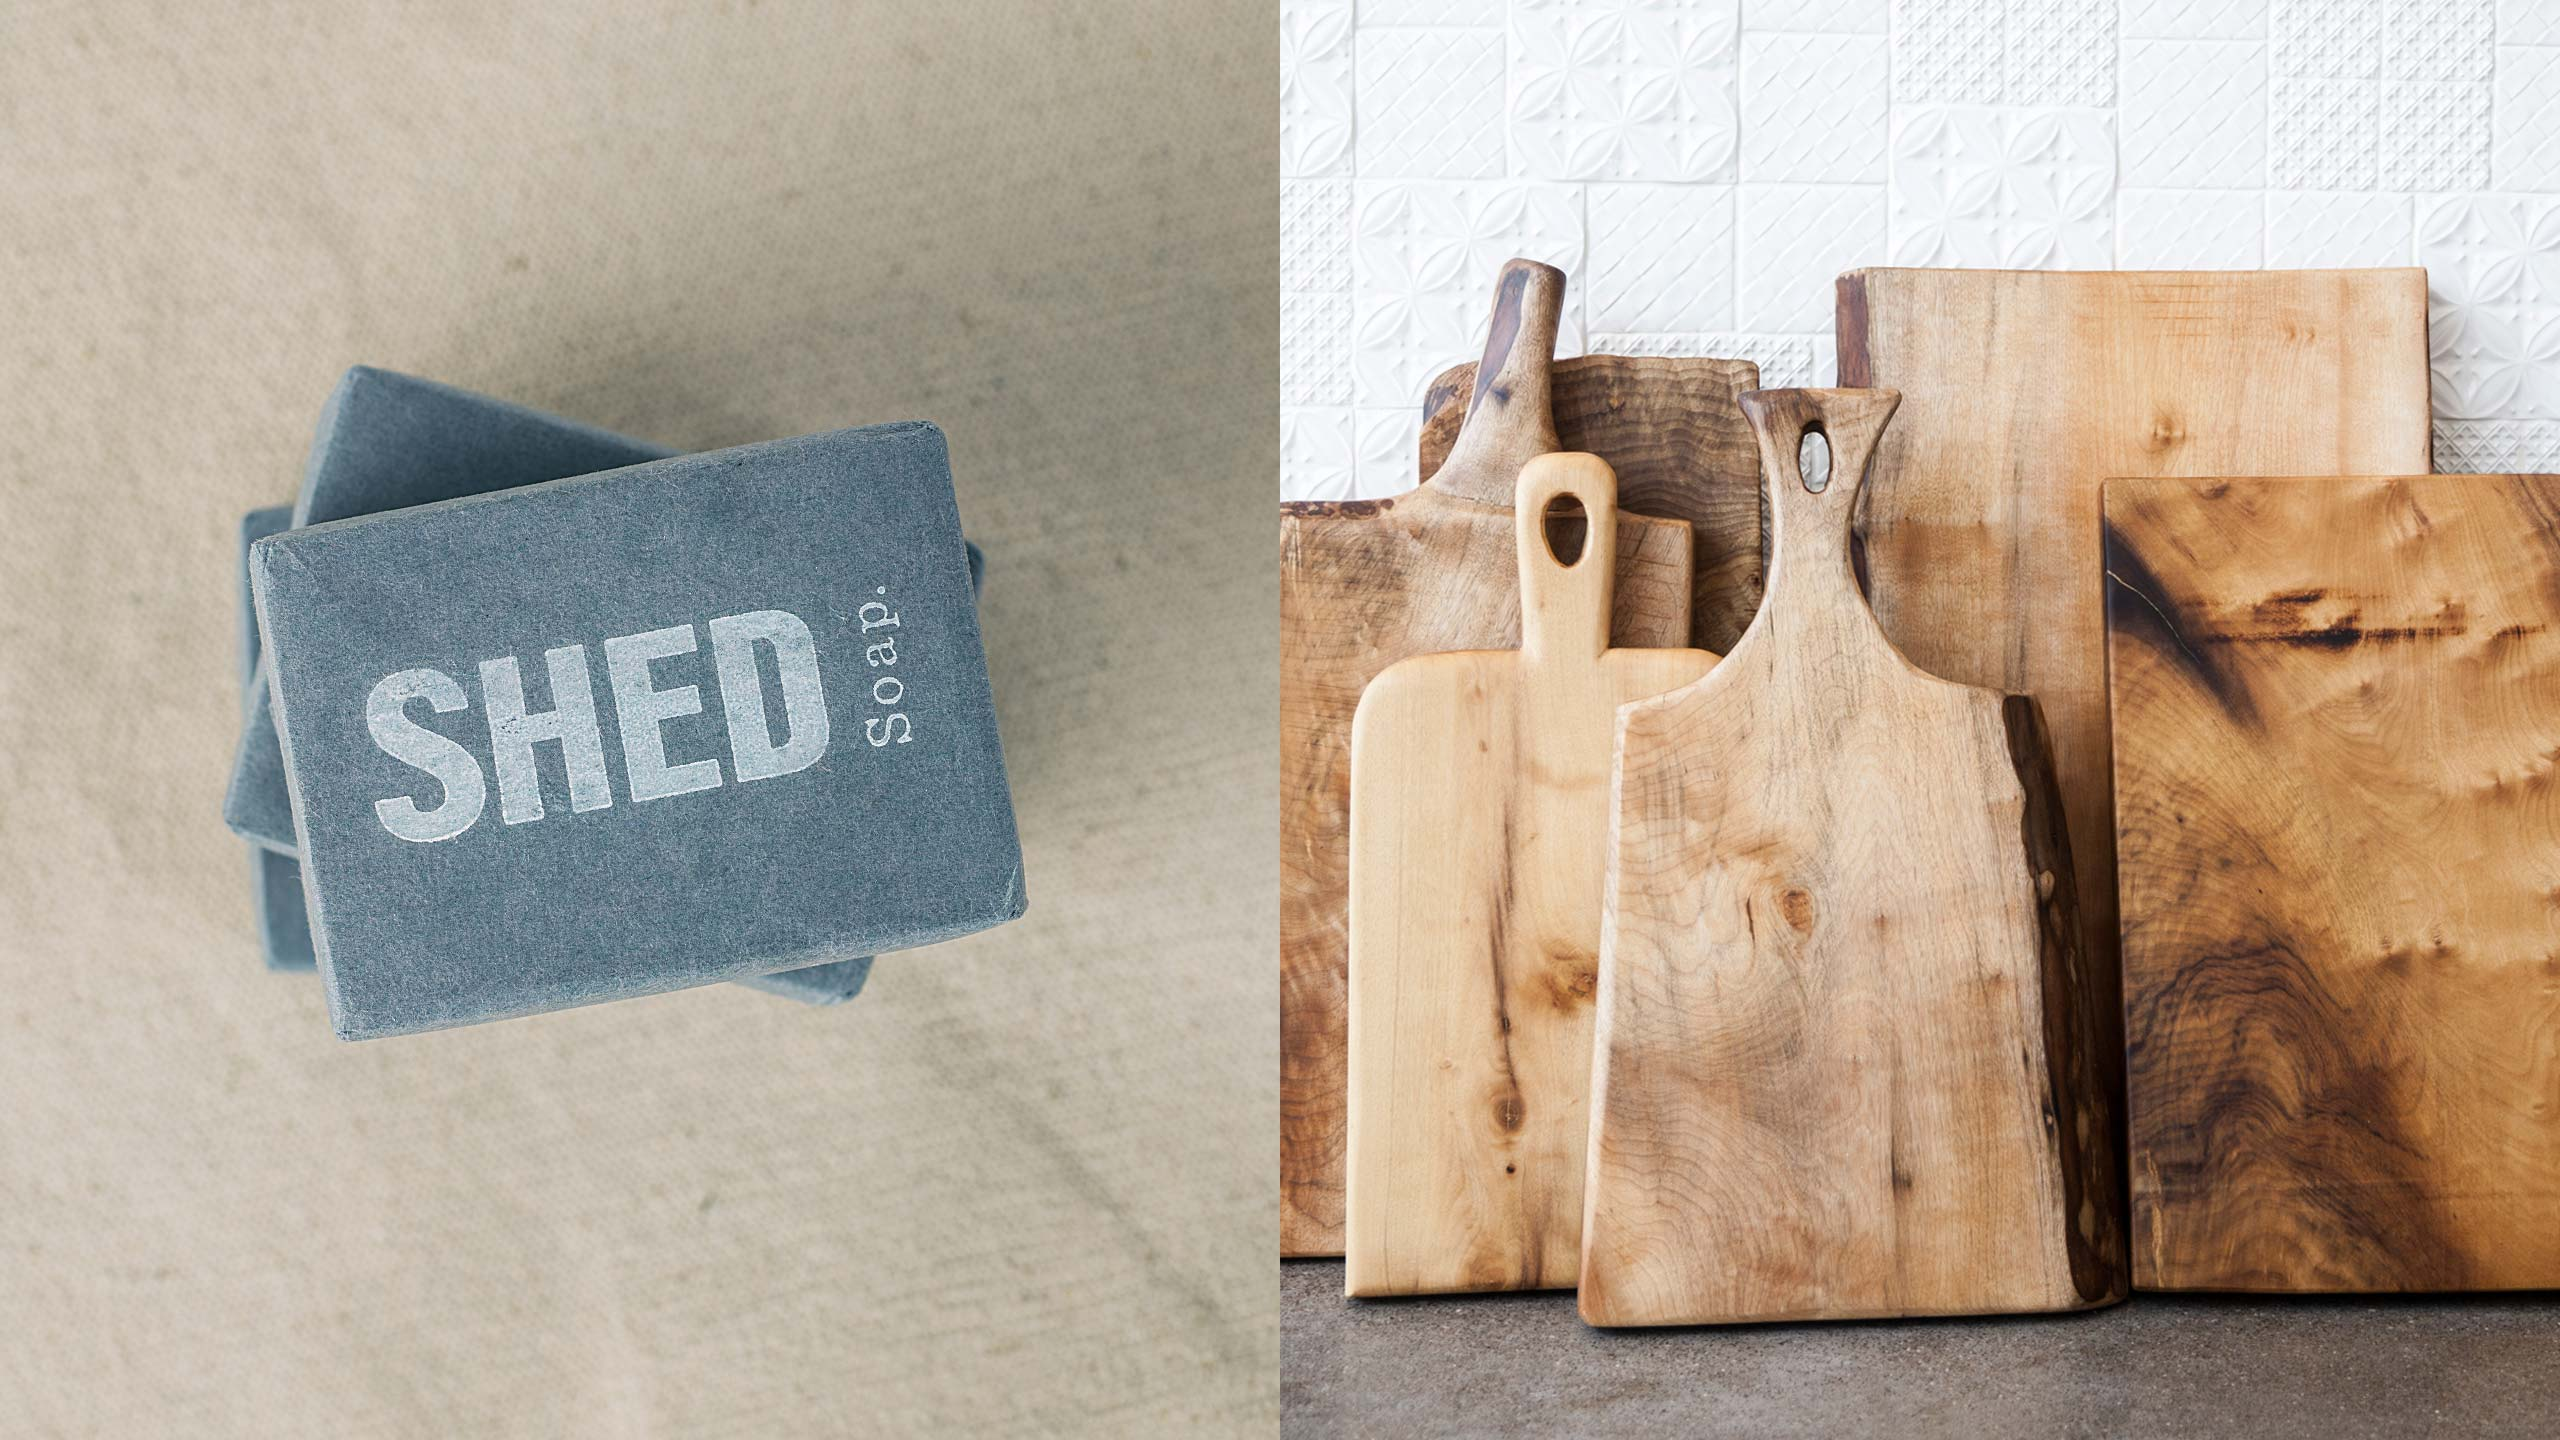 SHED Product Photography of Soaps and Cutting Boards